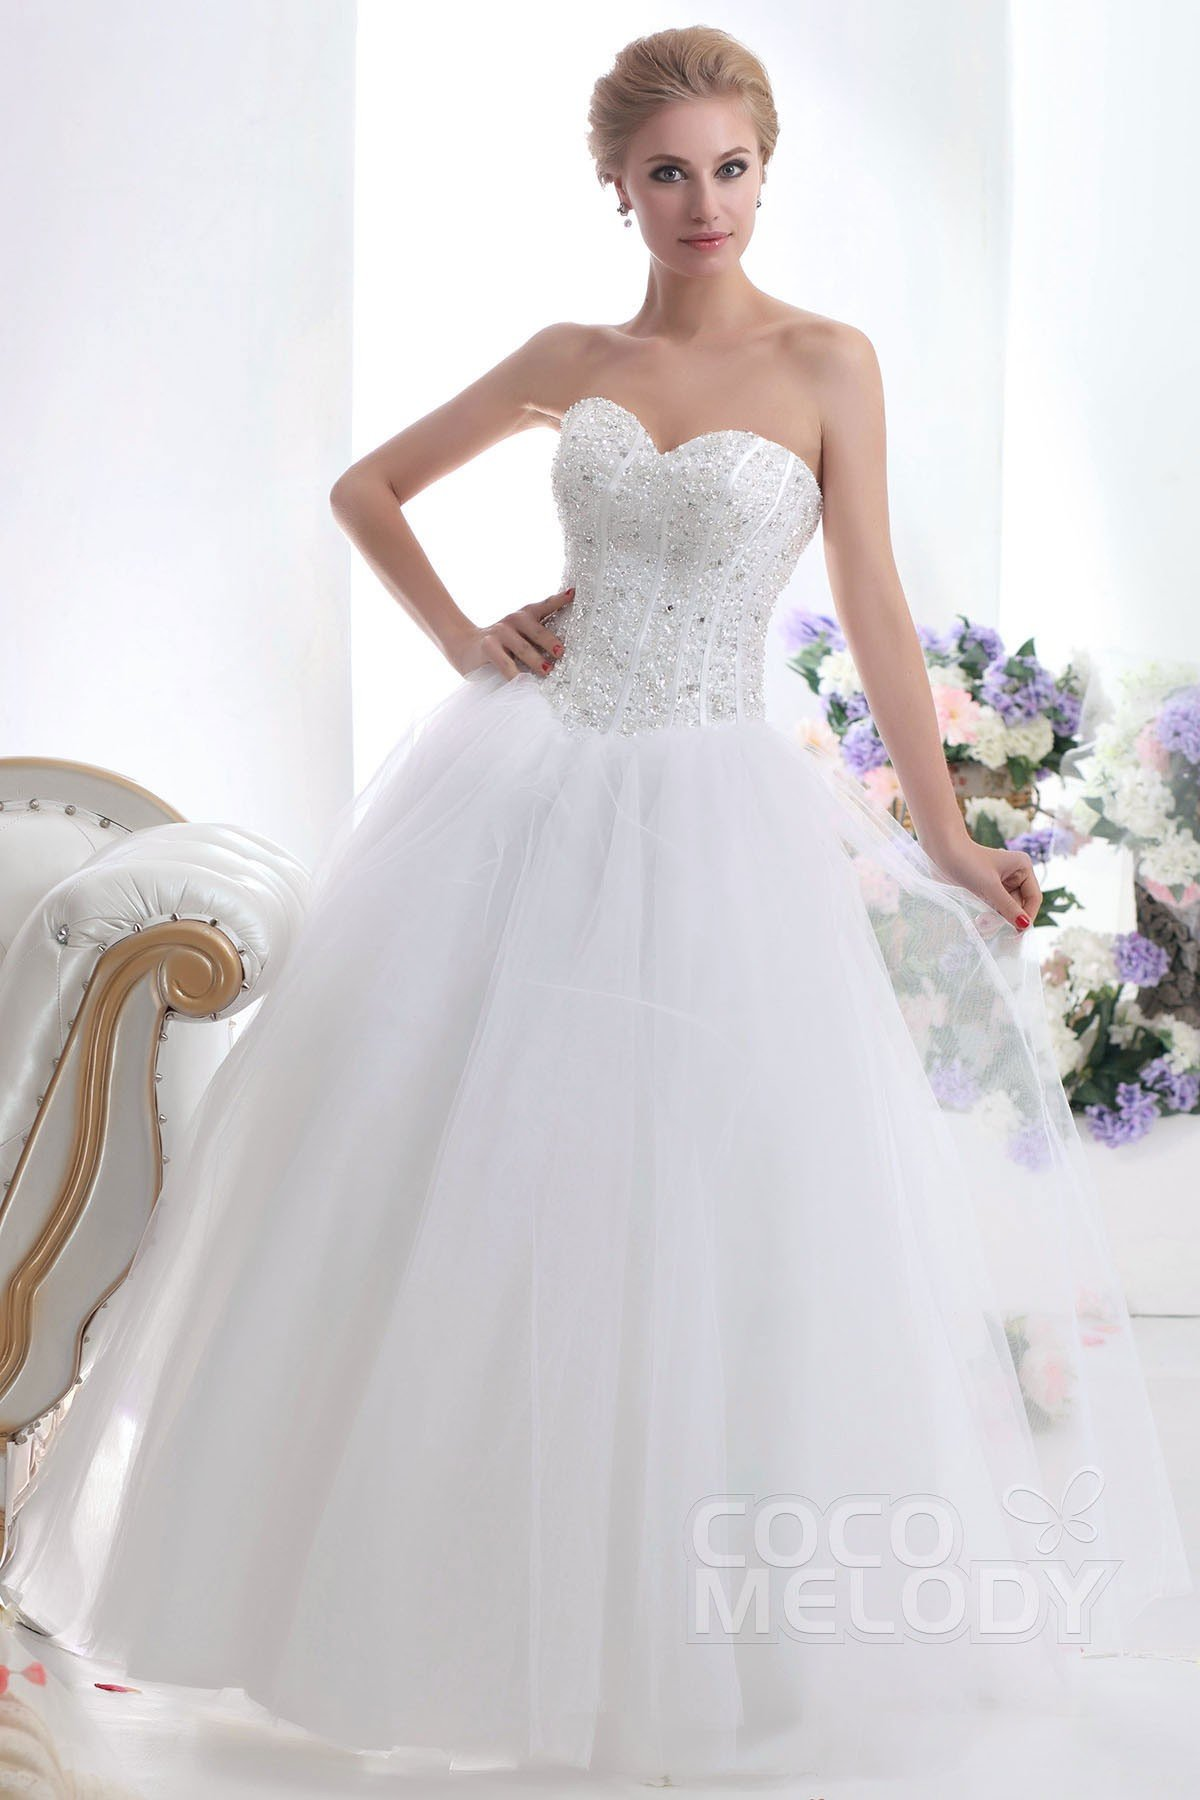 Cocomelody: Graceful Ball Gown Sweetheart Basque Waist Floor Length ...